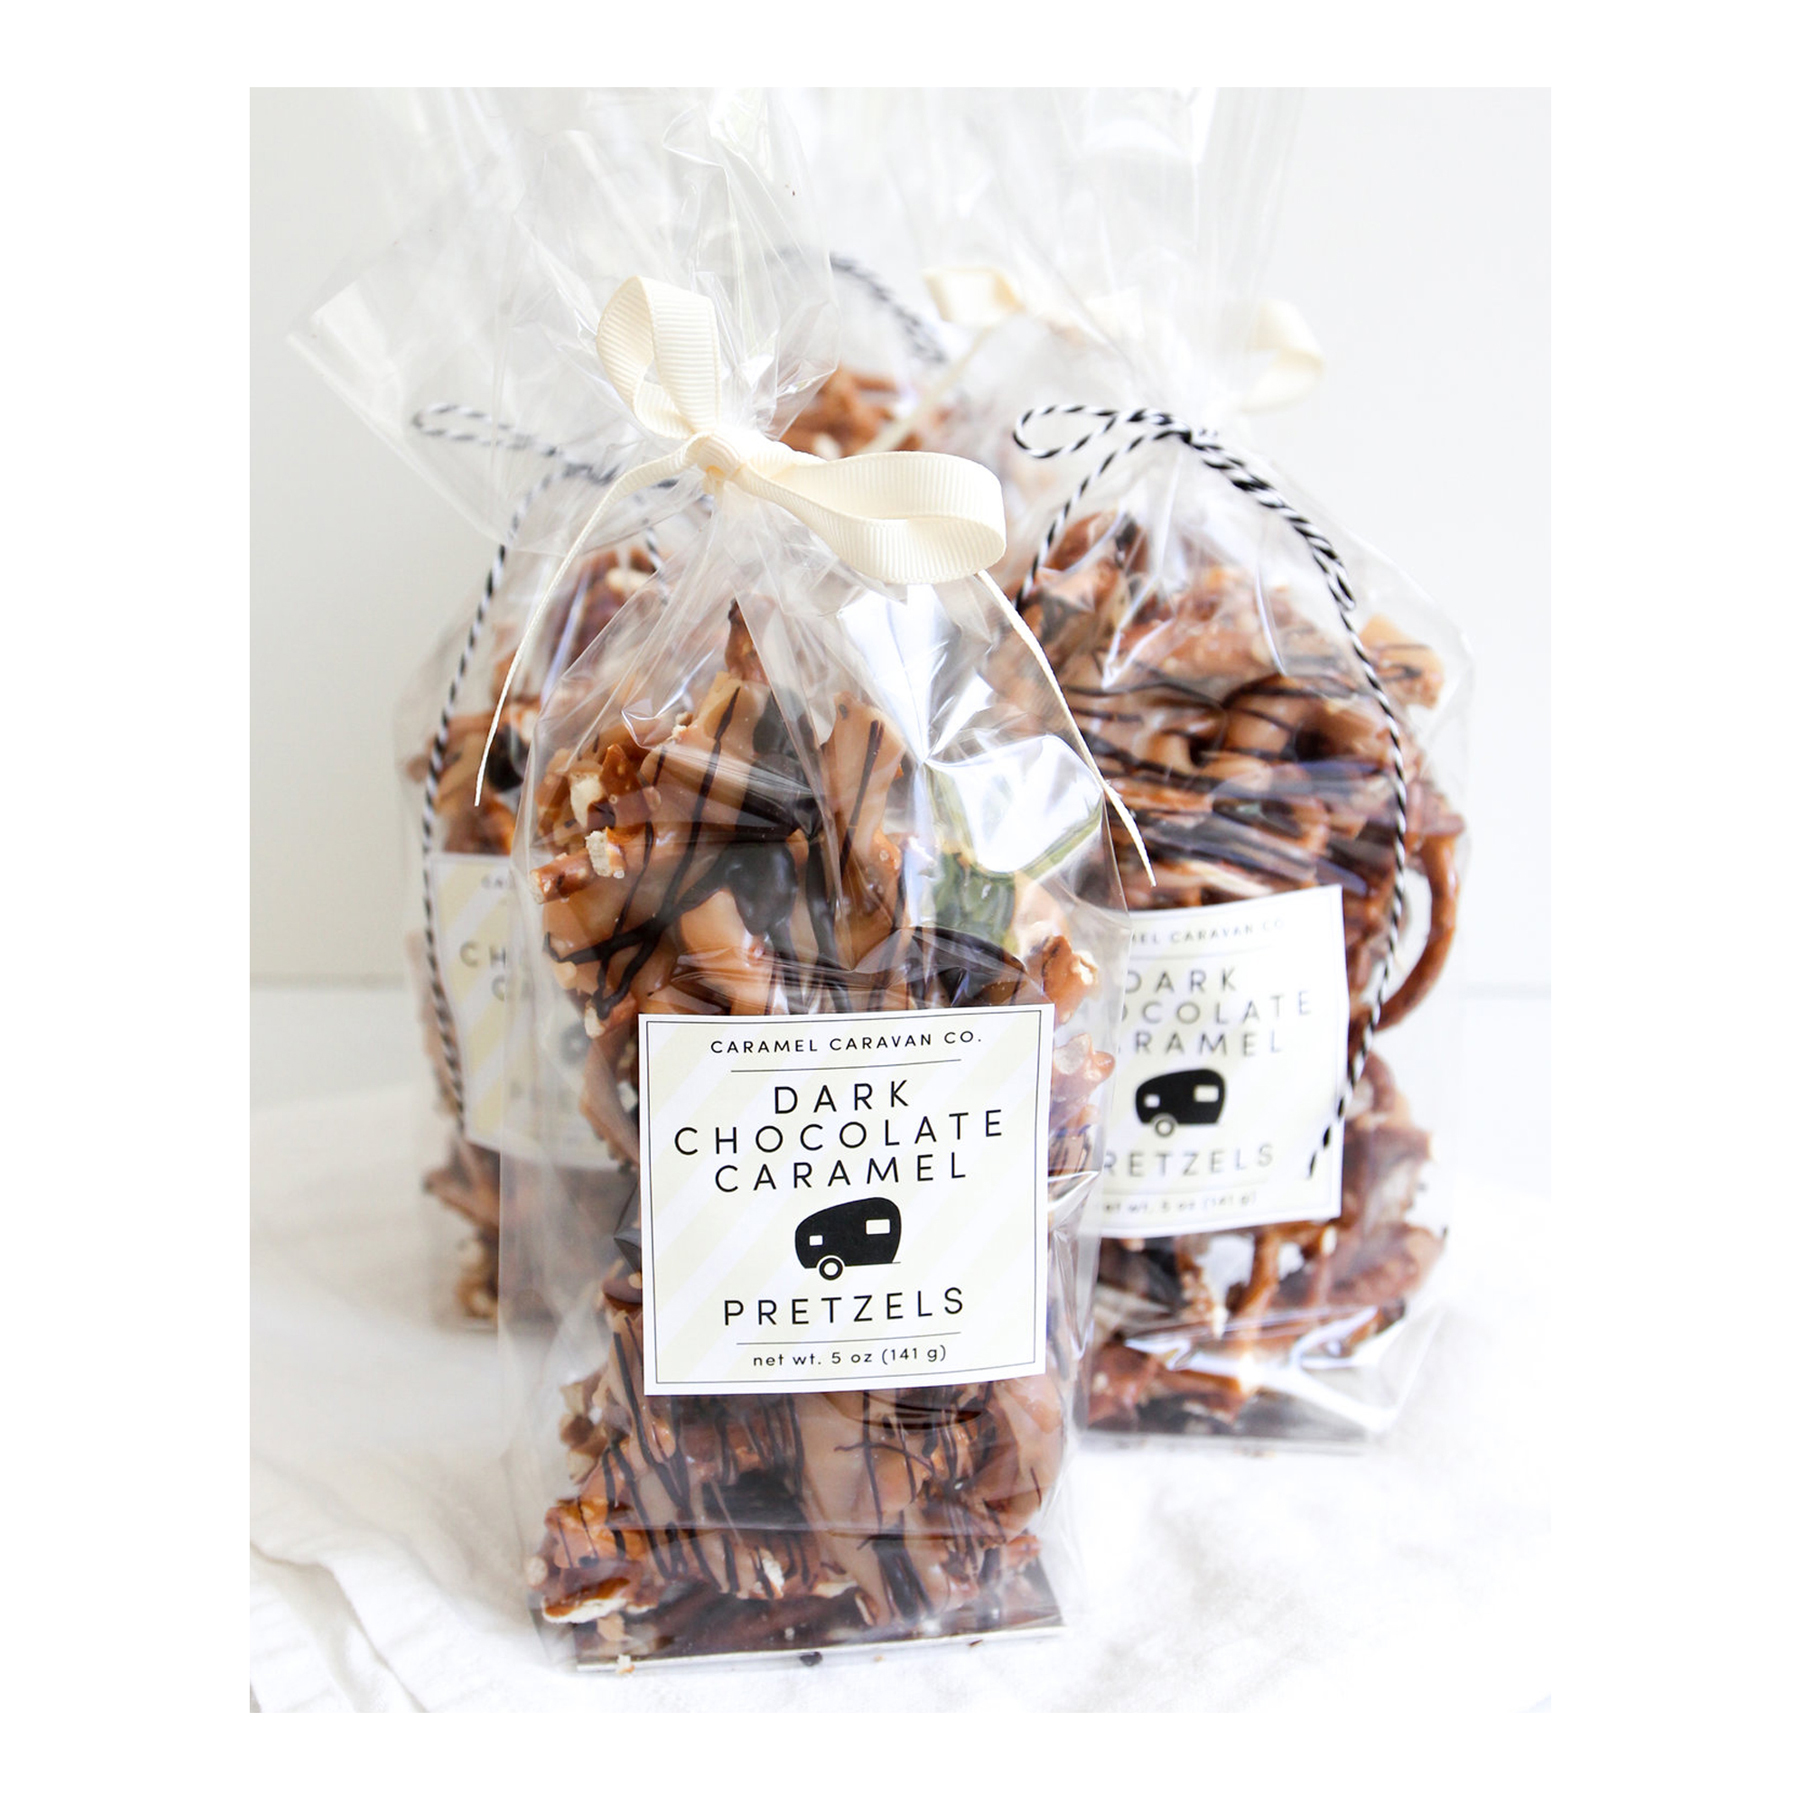 Cheap Christmas Gifts: Caramel Caravan dark chocolate caramel pretzels